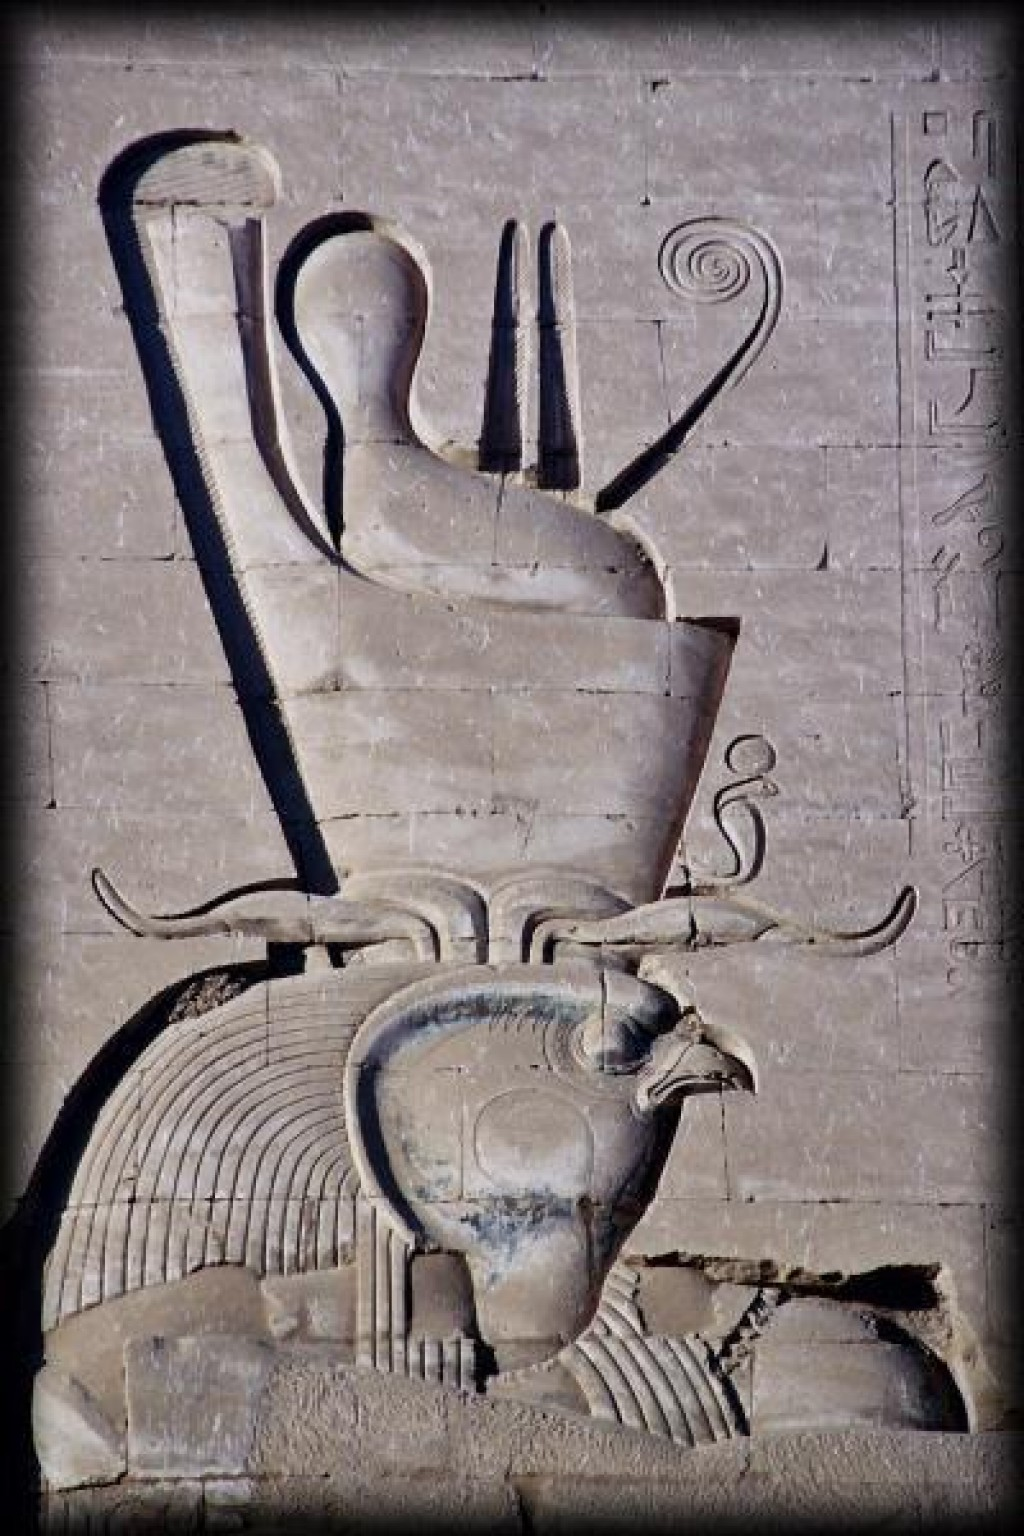 The god Horus.